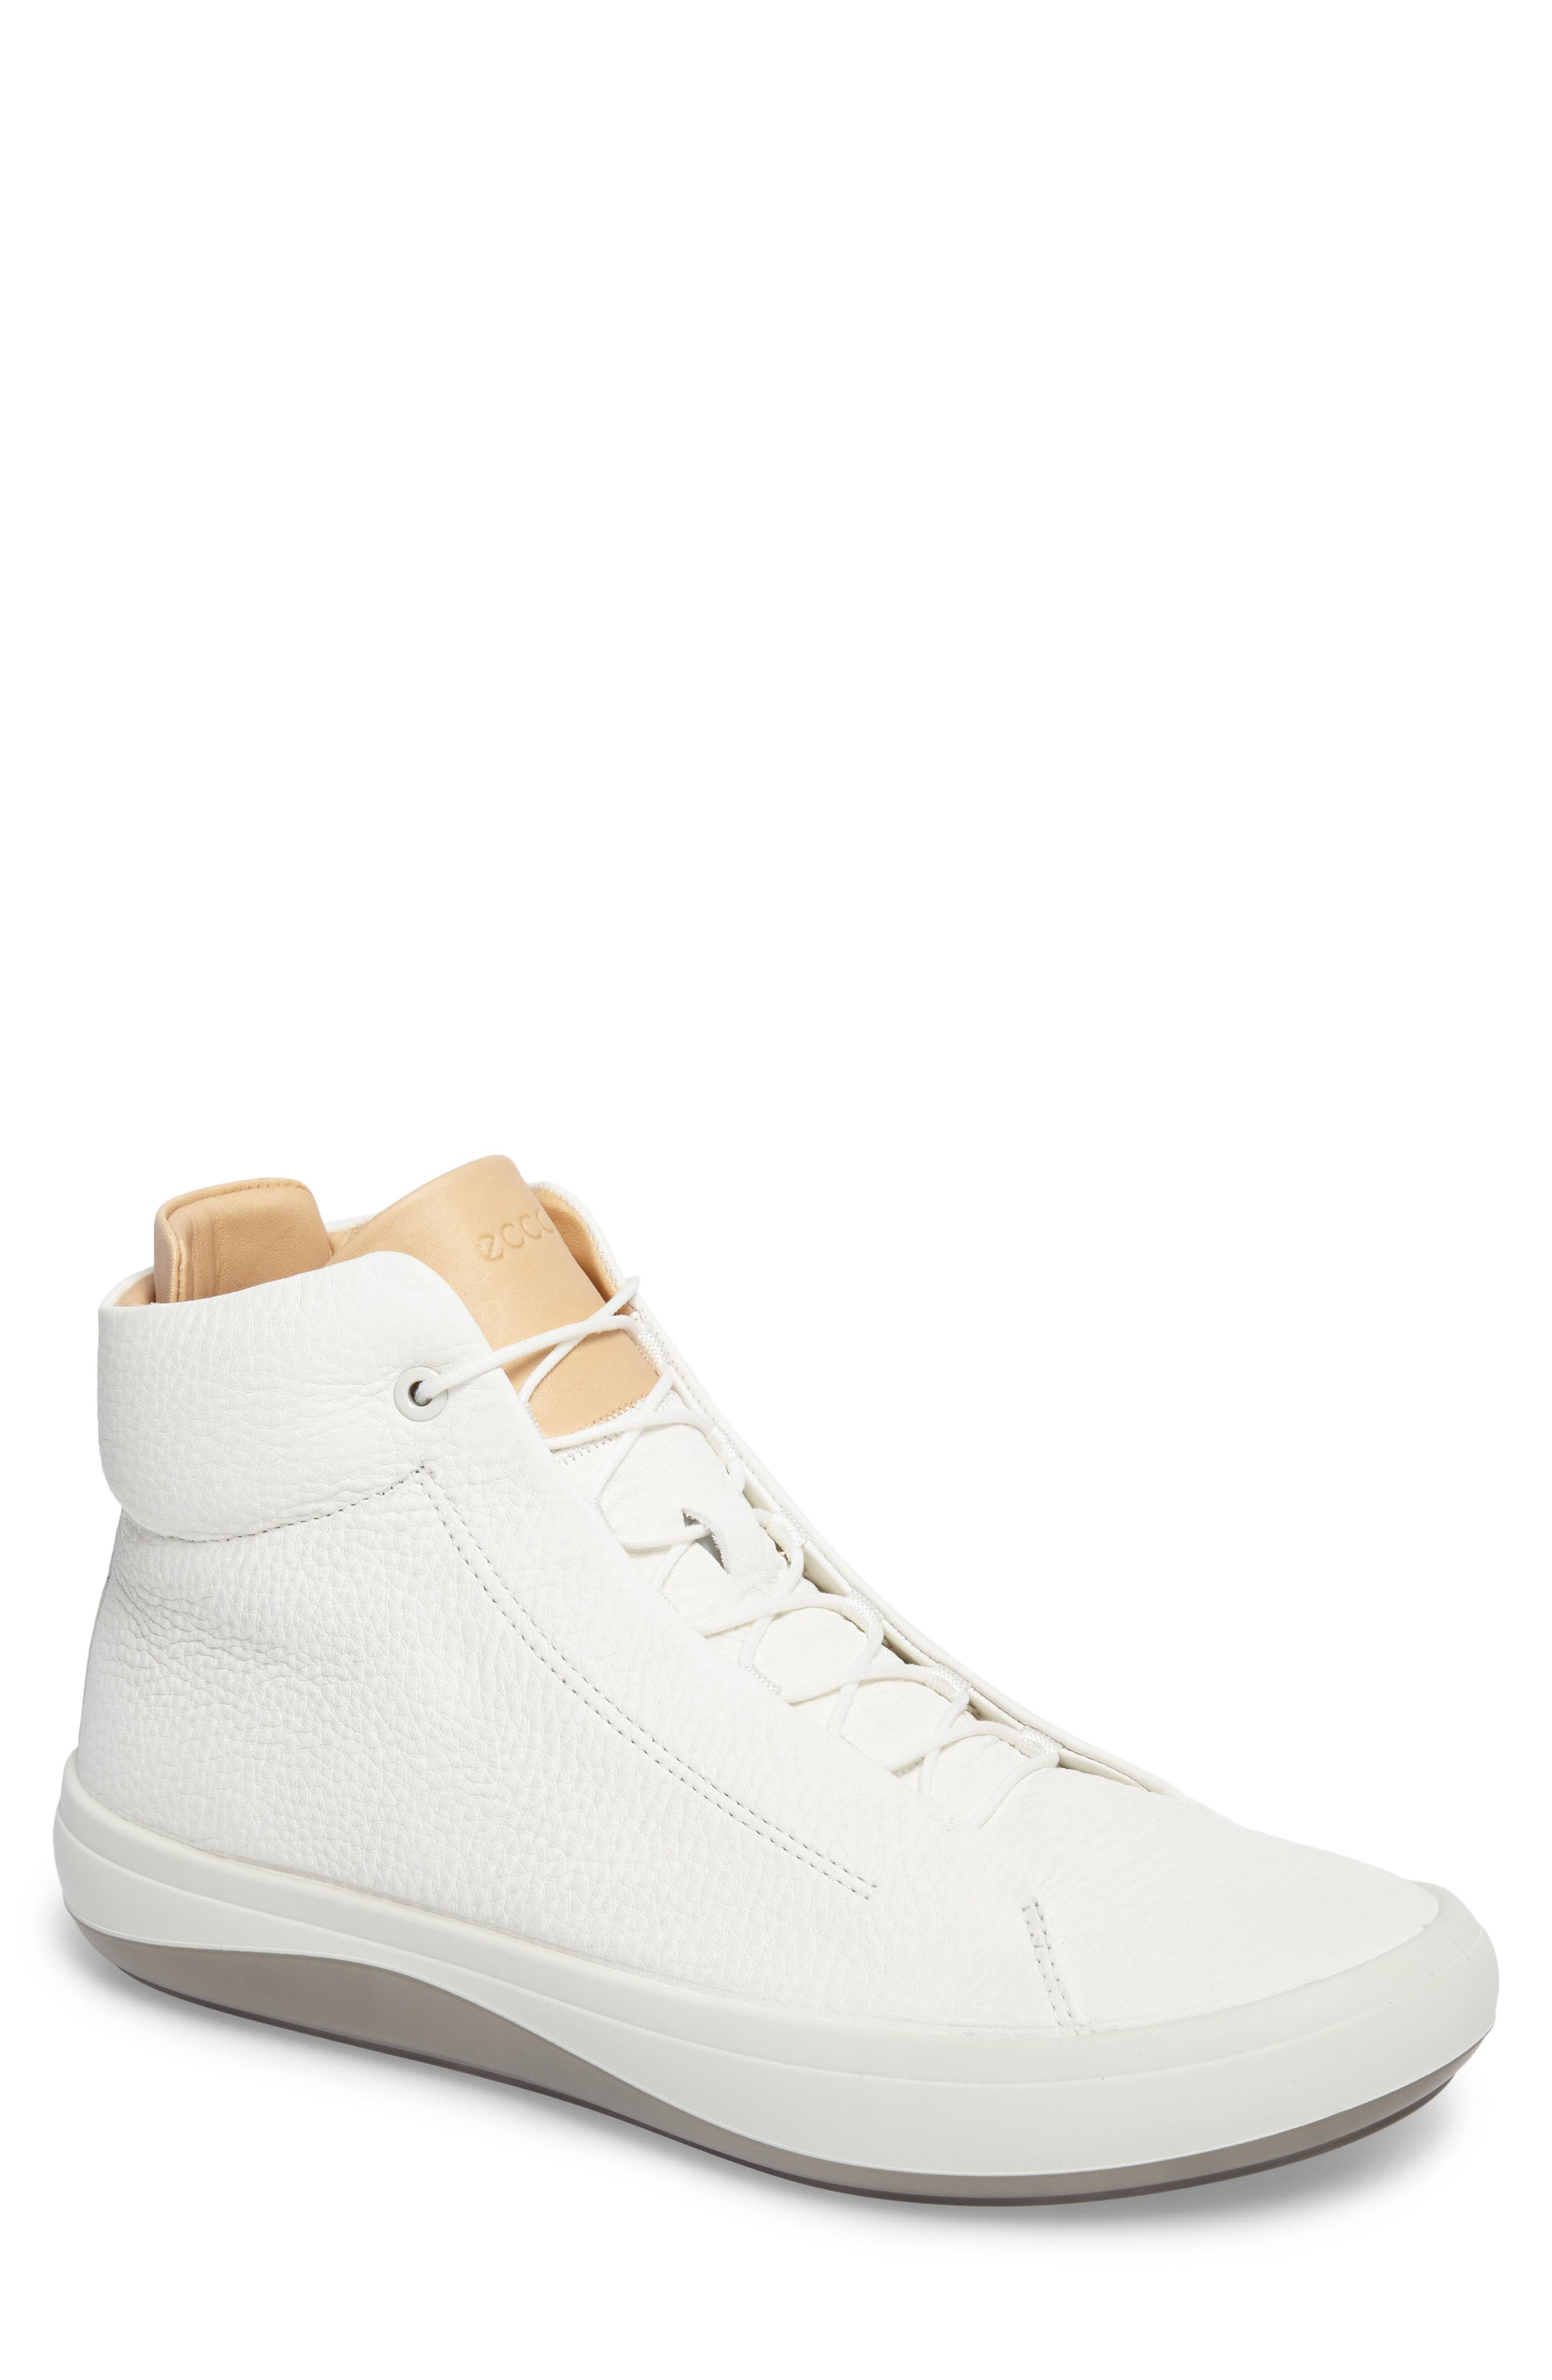 Kinhin Mid Sneaker,                         Main,                         color, White Leather